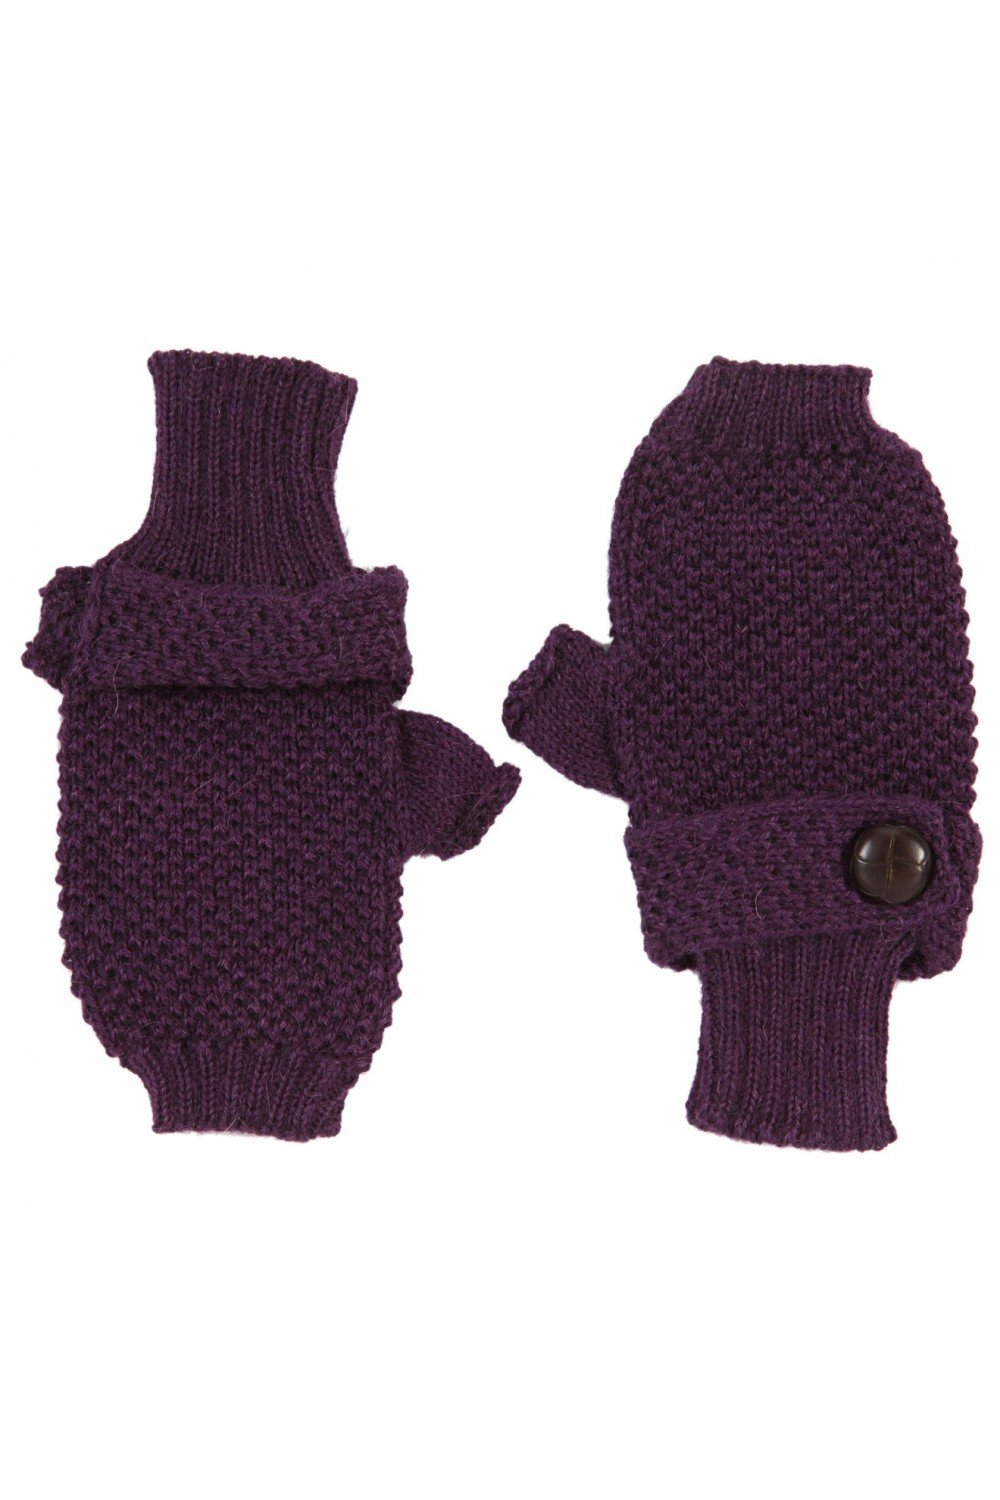 Baby Alpaca - knitted Fingerless Mittens Gloves 100% baby alpaca - purple, One size ANTA Q' ULQI